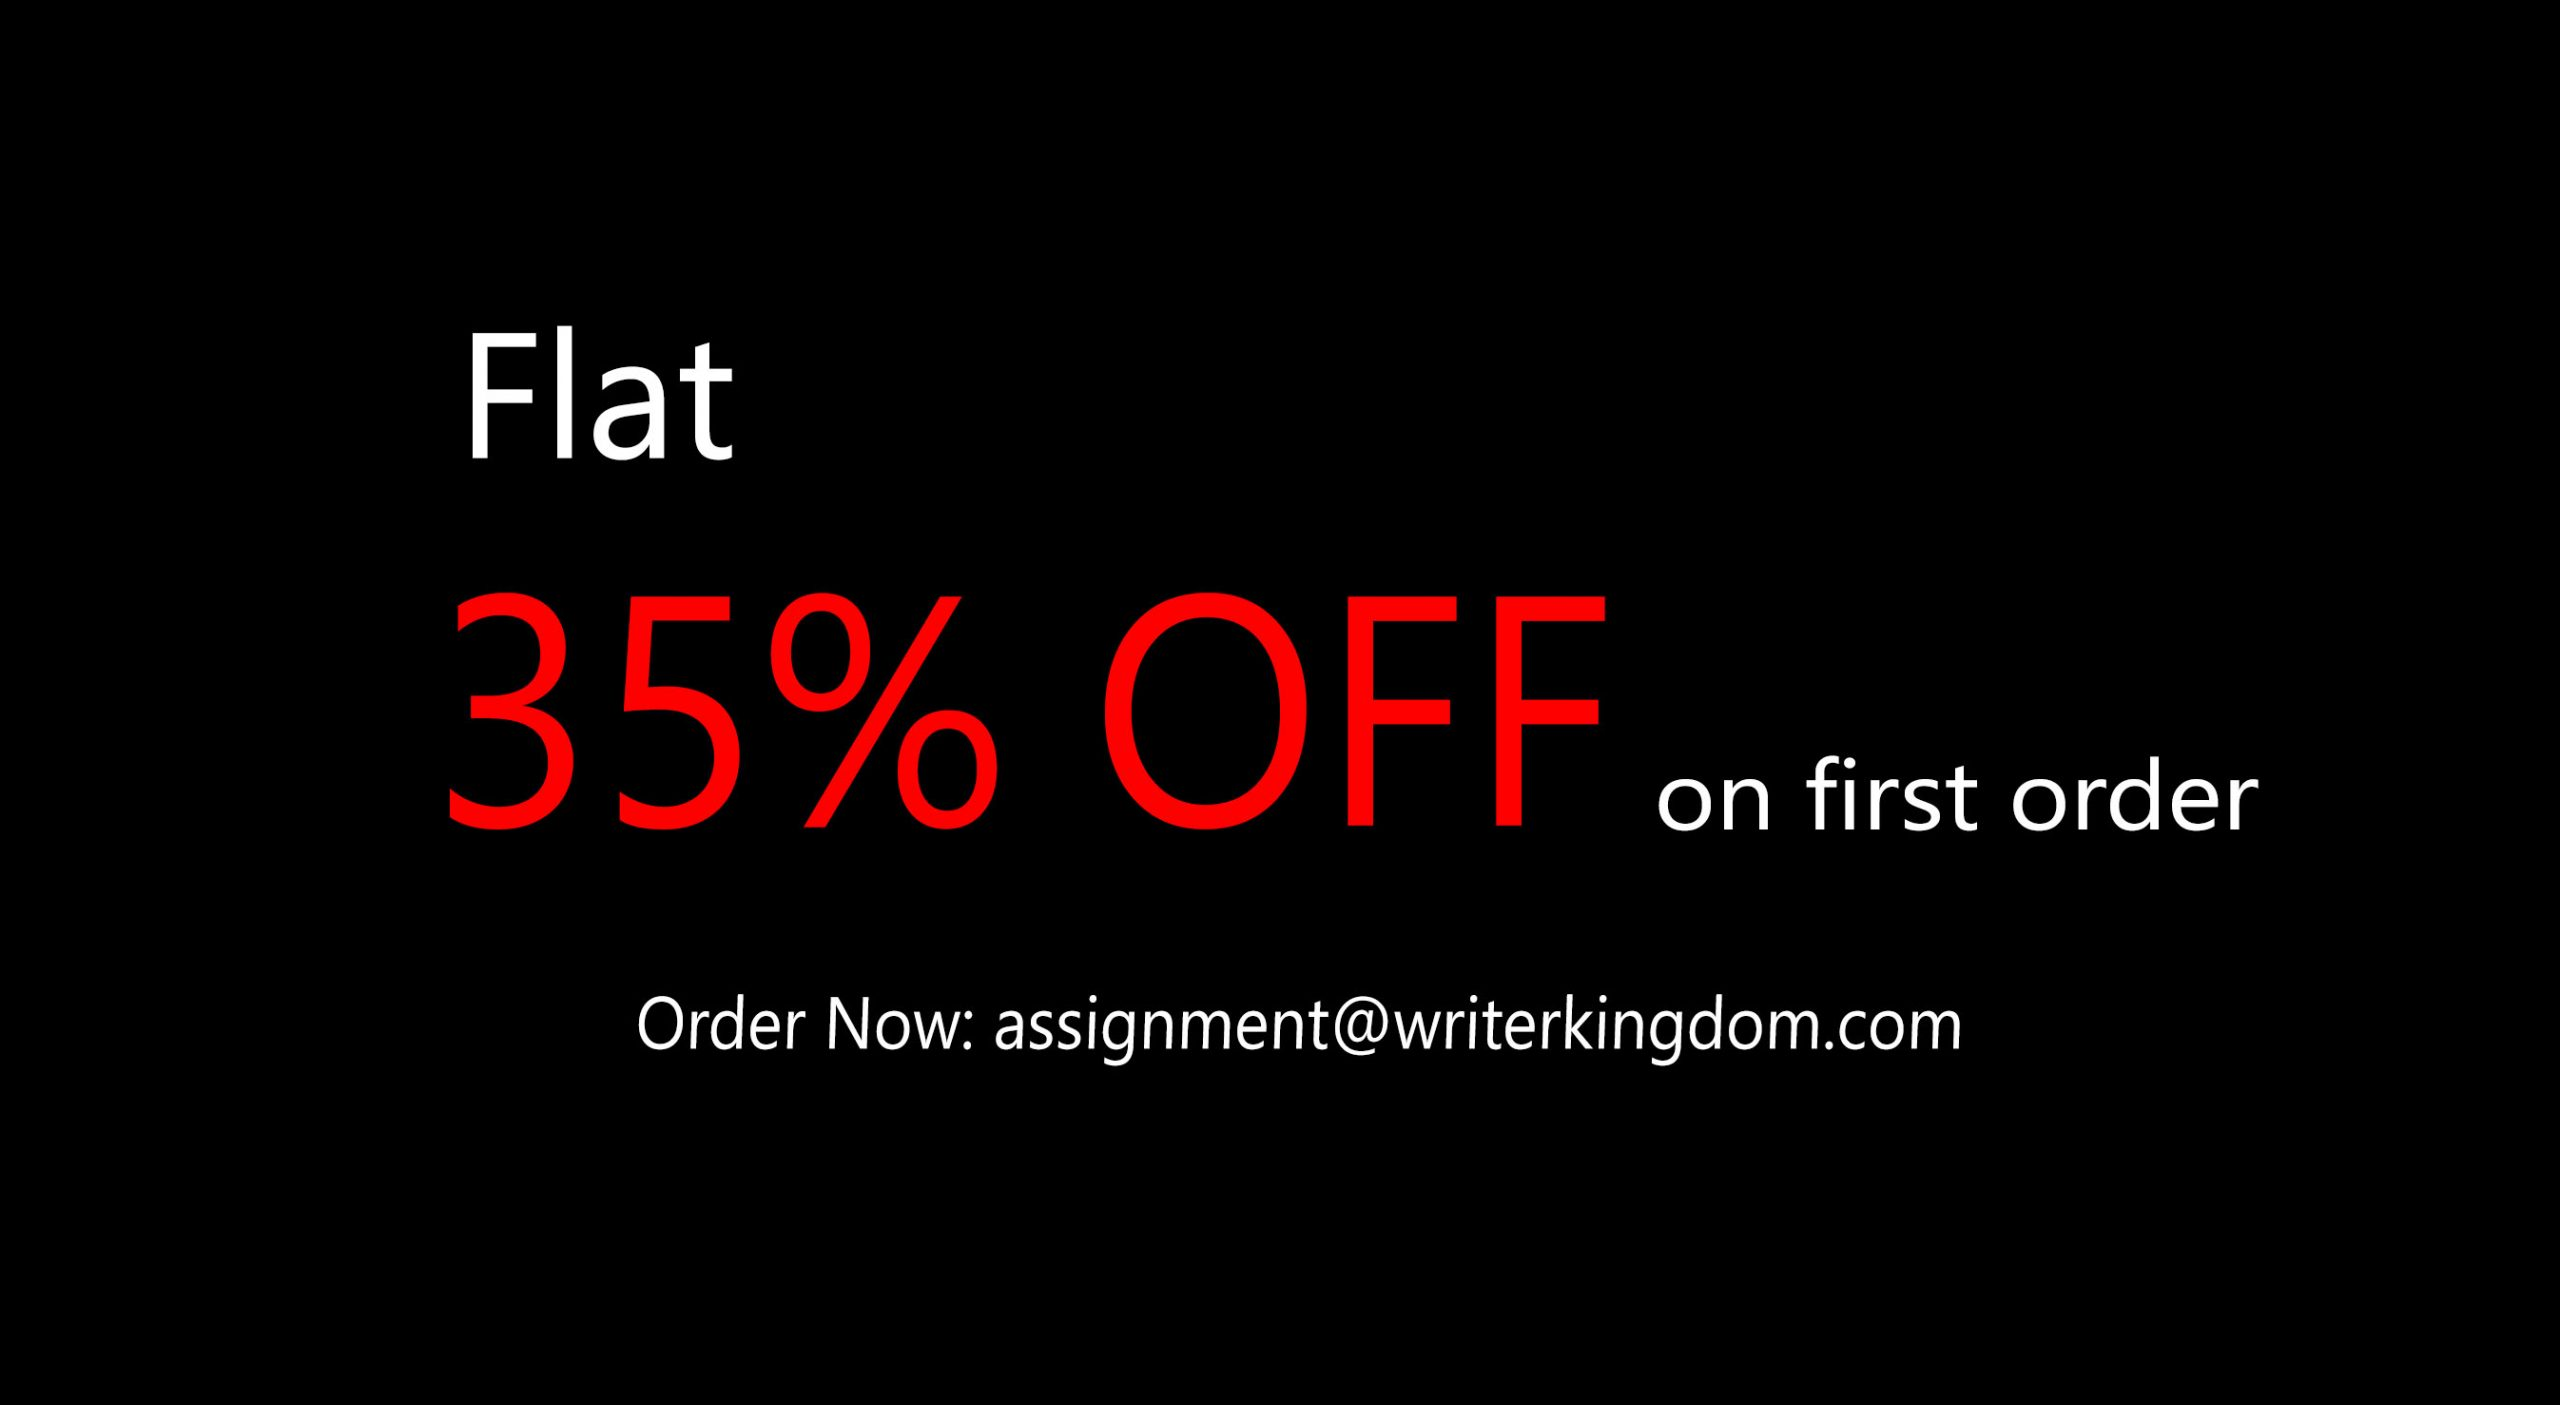 Flat 35% OFF on your first order